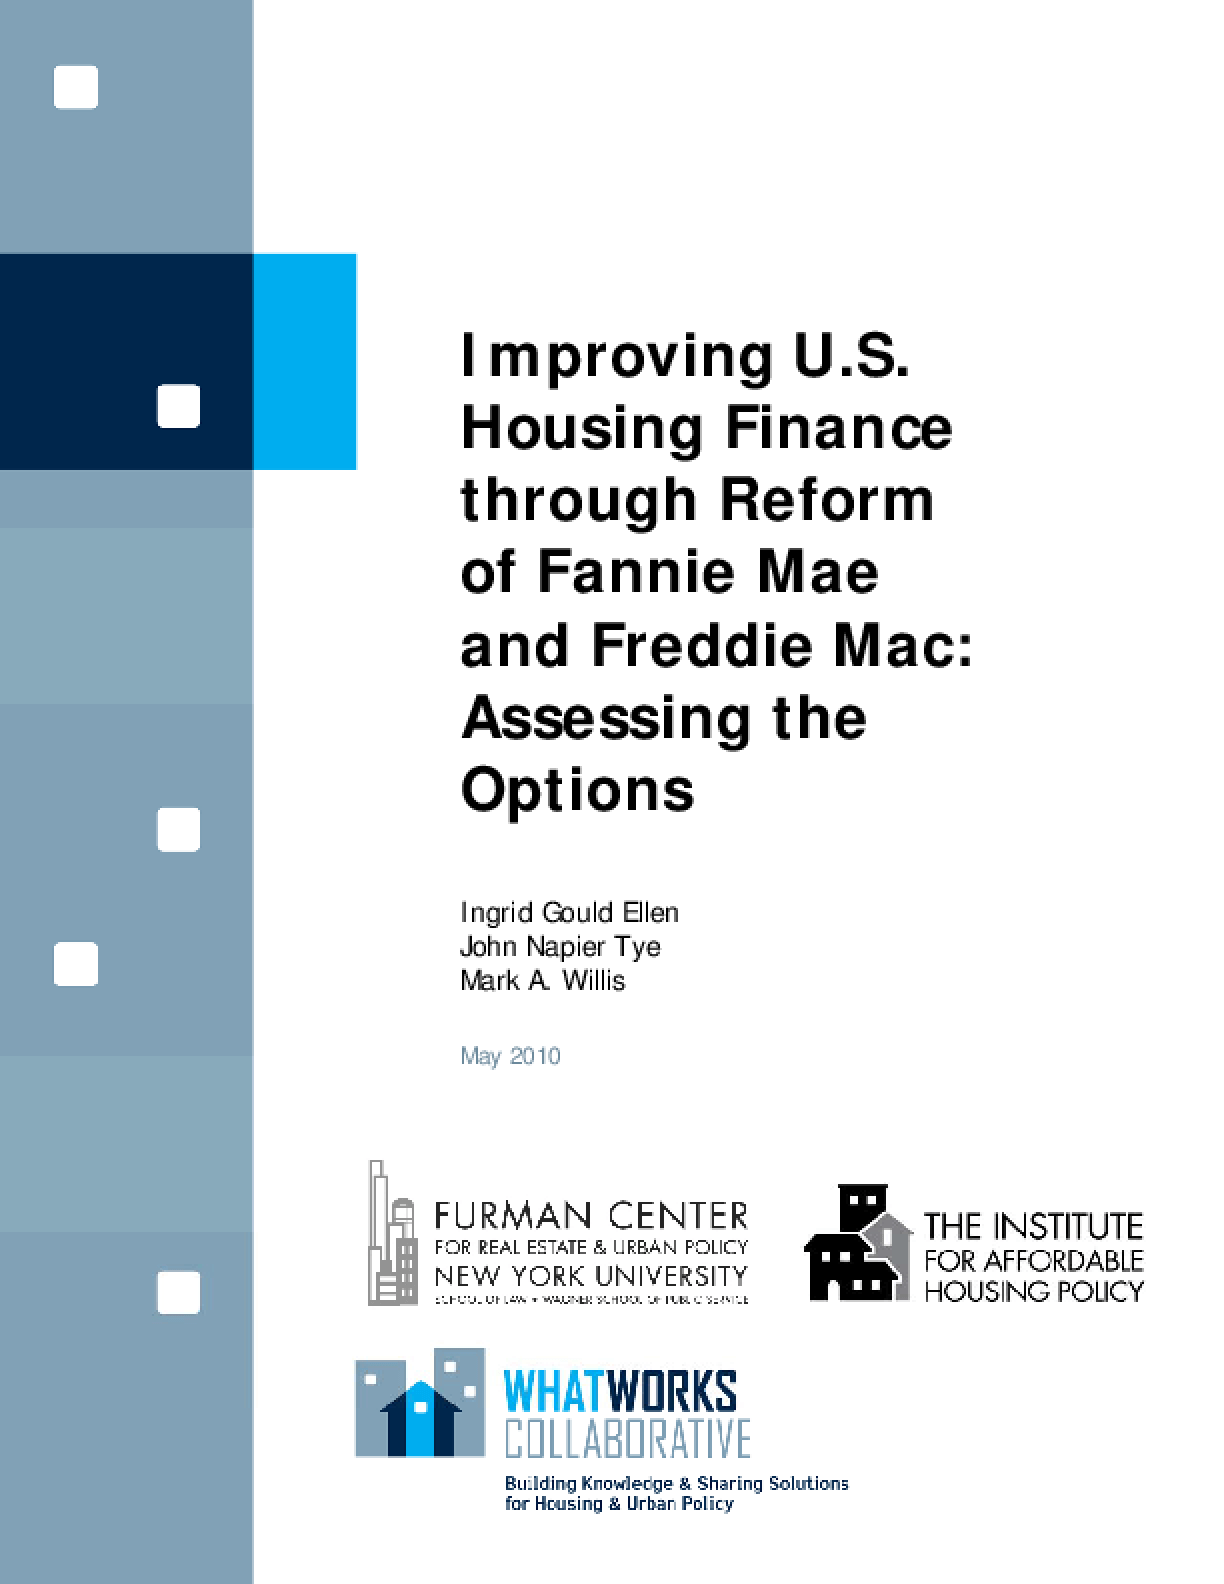 Improving U.S. Housing Finance Through Reform of Fannie Mae and Freddie Mac: Assessing the Options